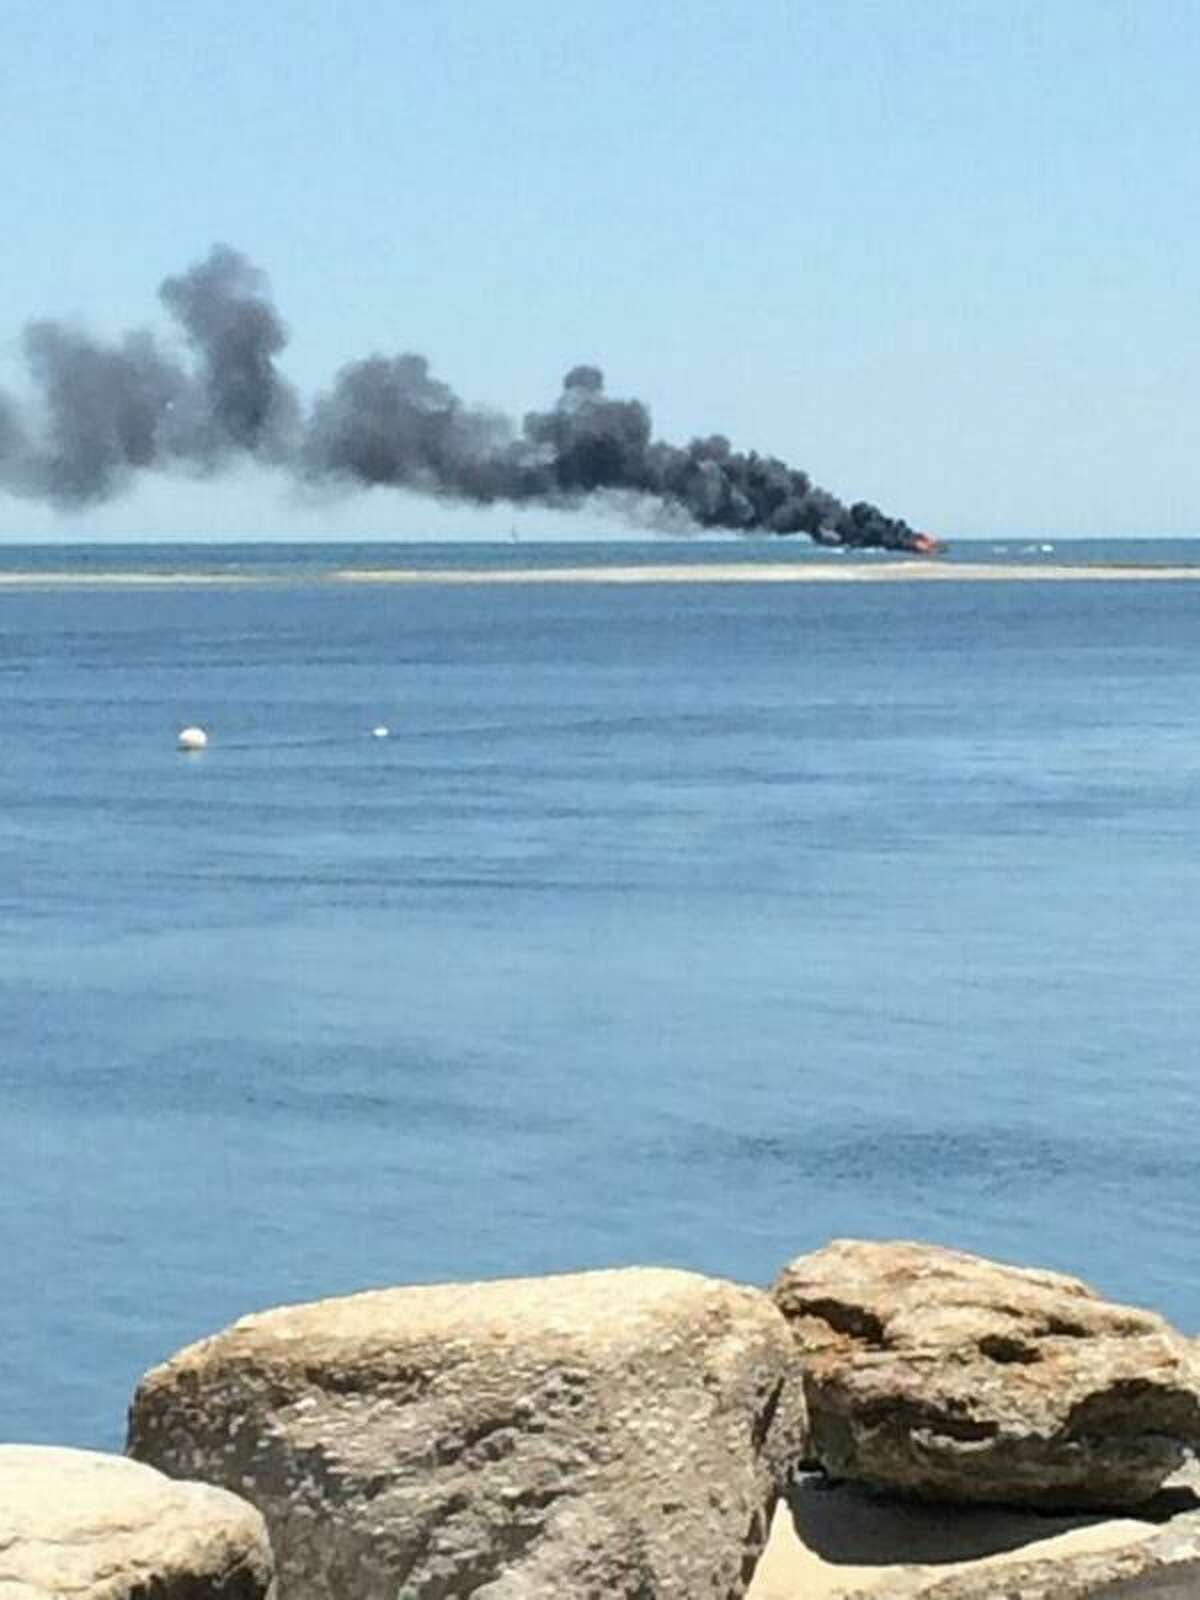 A clam board caught fire in the Housatonic River between Milford and Stratford on Saturday, June 7, 2014. Three people aboard the boat were able to escape safely onto another nearby clam boat. One of the men received third-degree burns. The burning boat is seen from Knapp's Landing in Stratford.